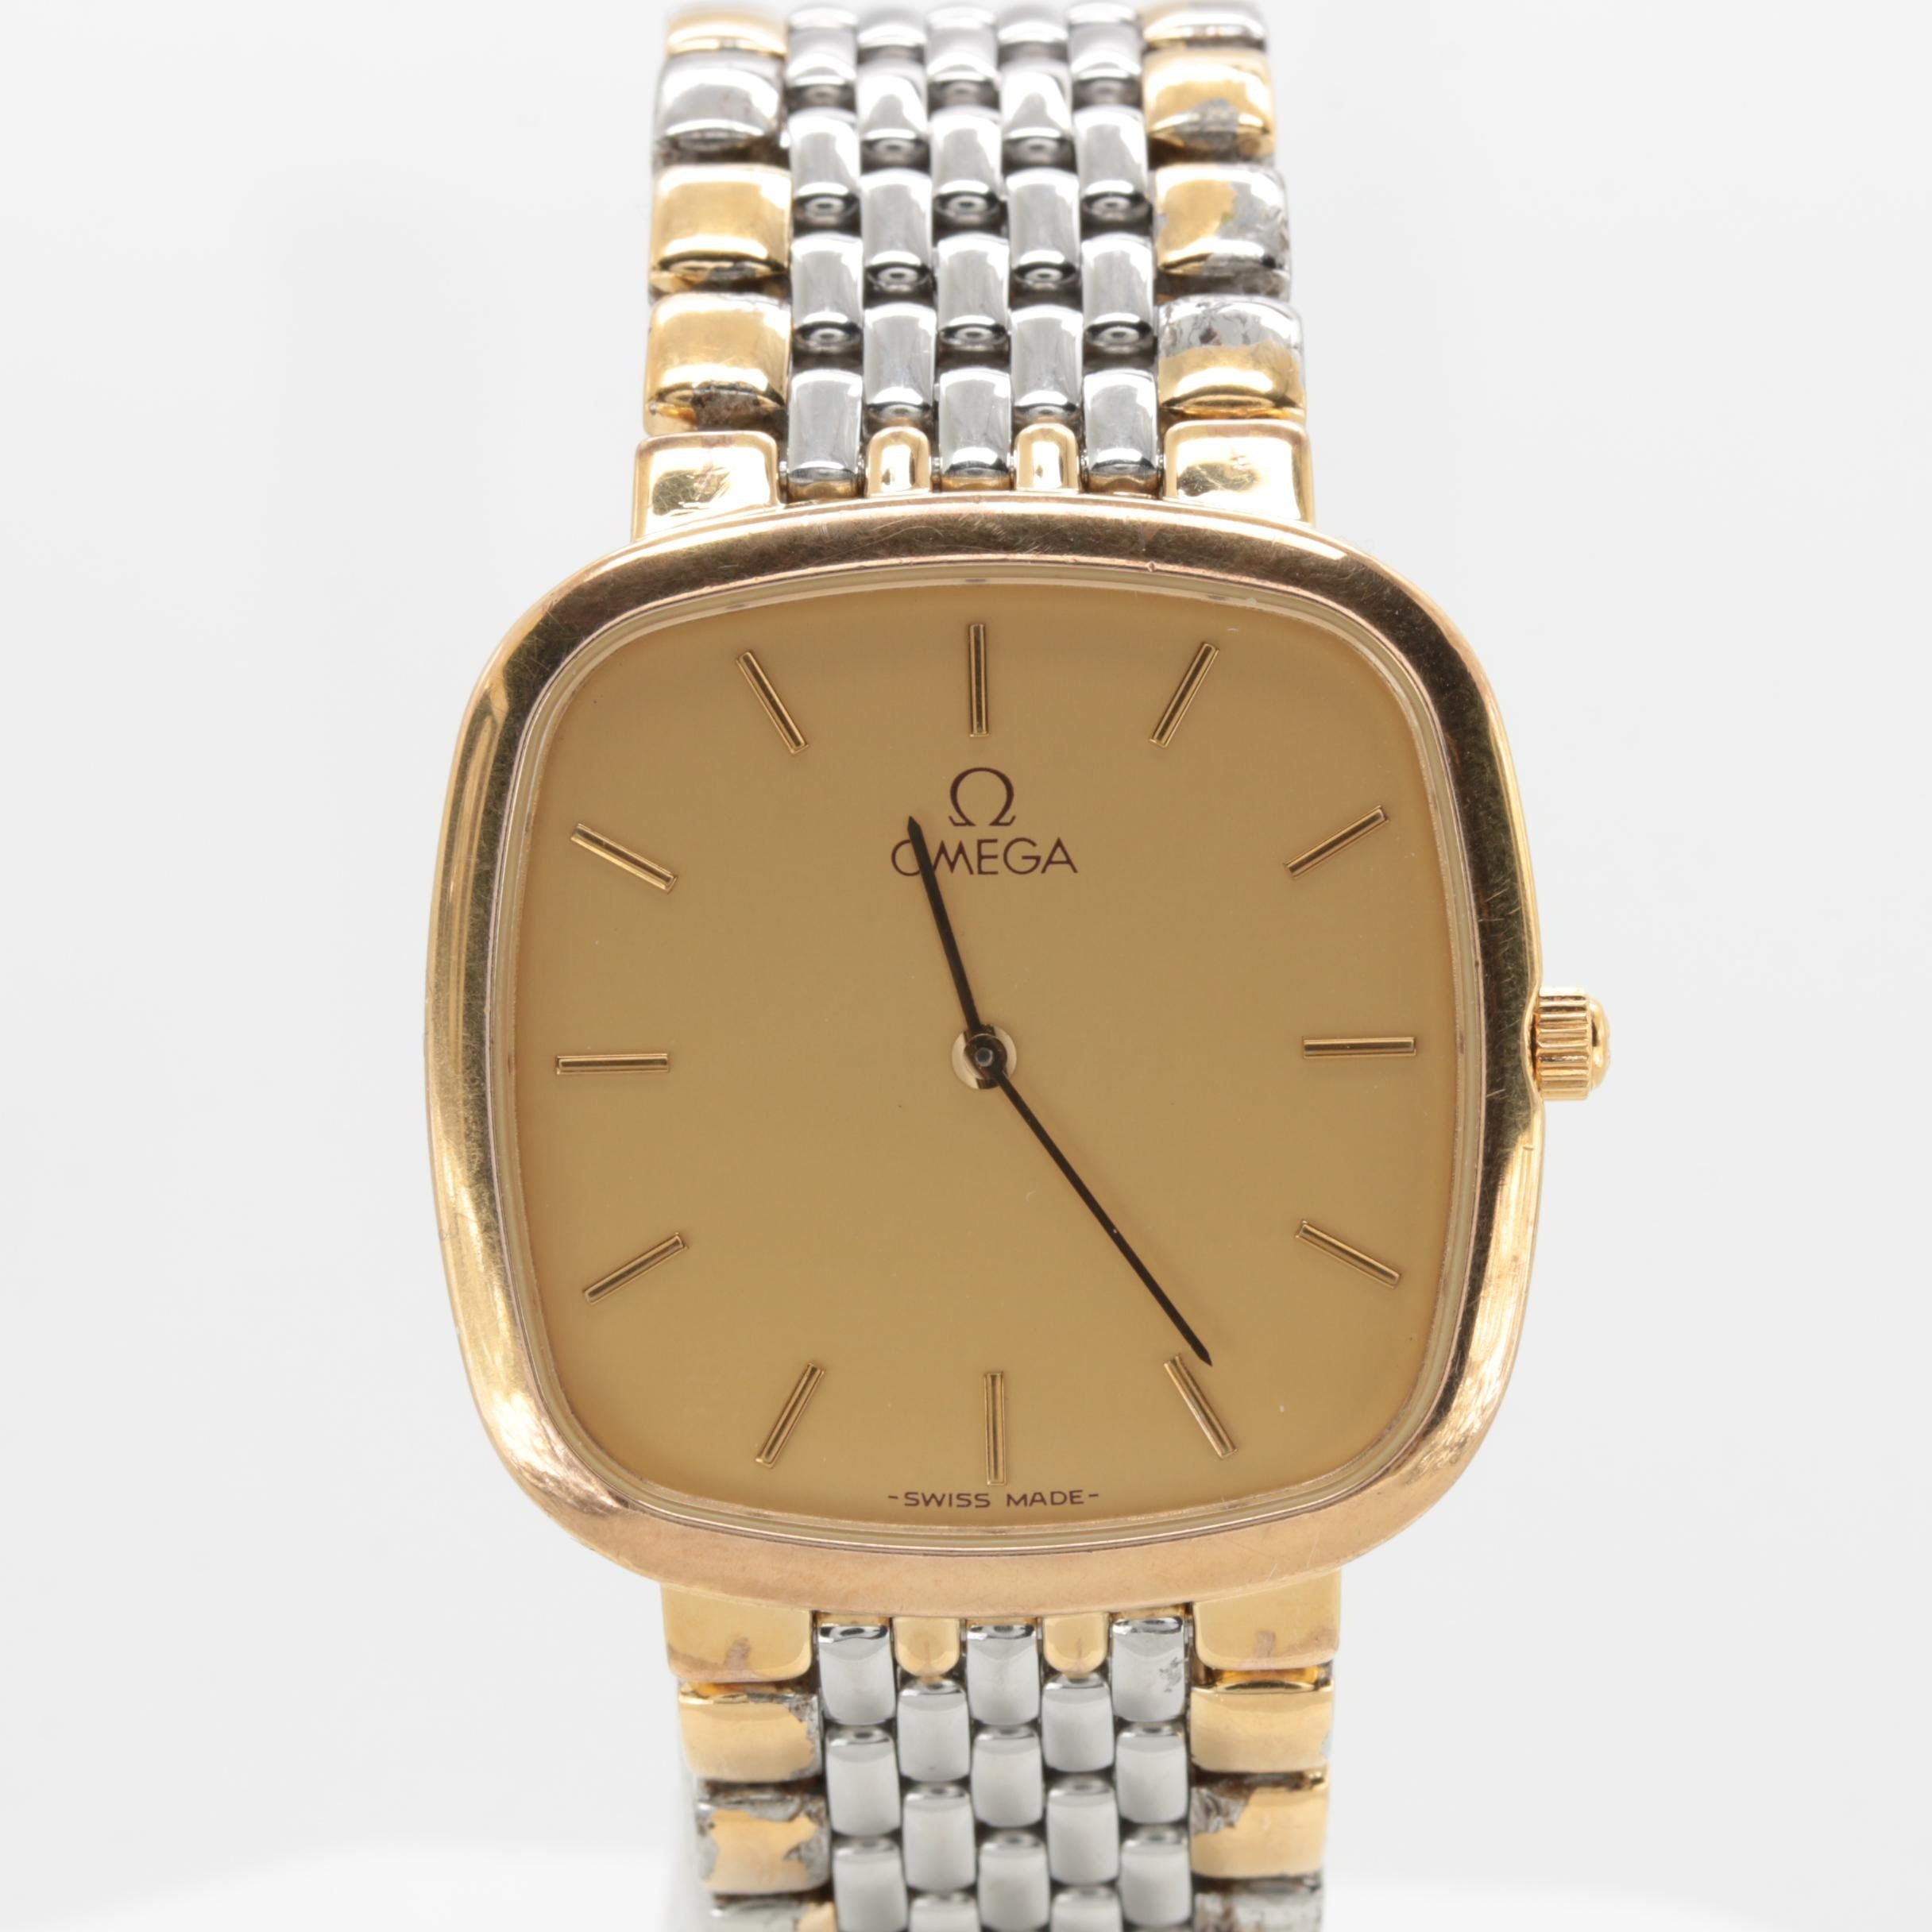 Omega De Ville Classic Stainless Steel and Gold Plated Wristwatch